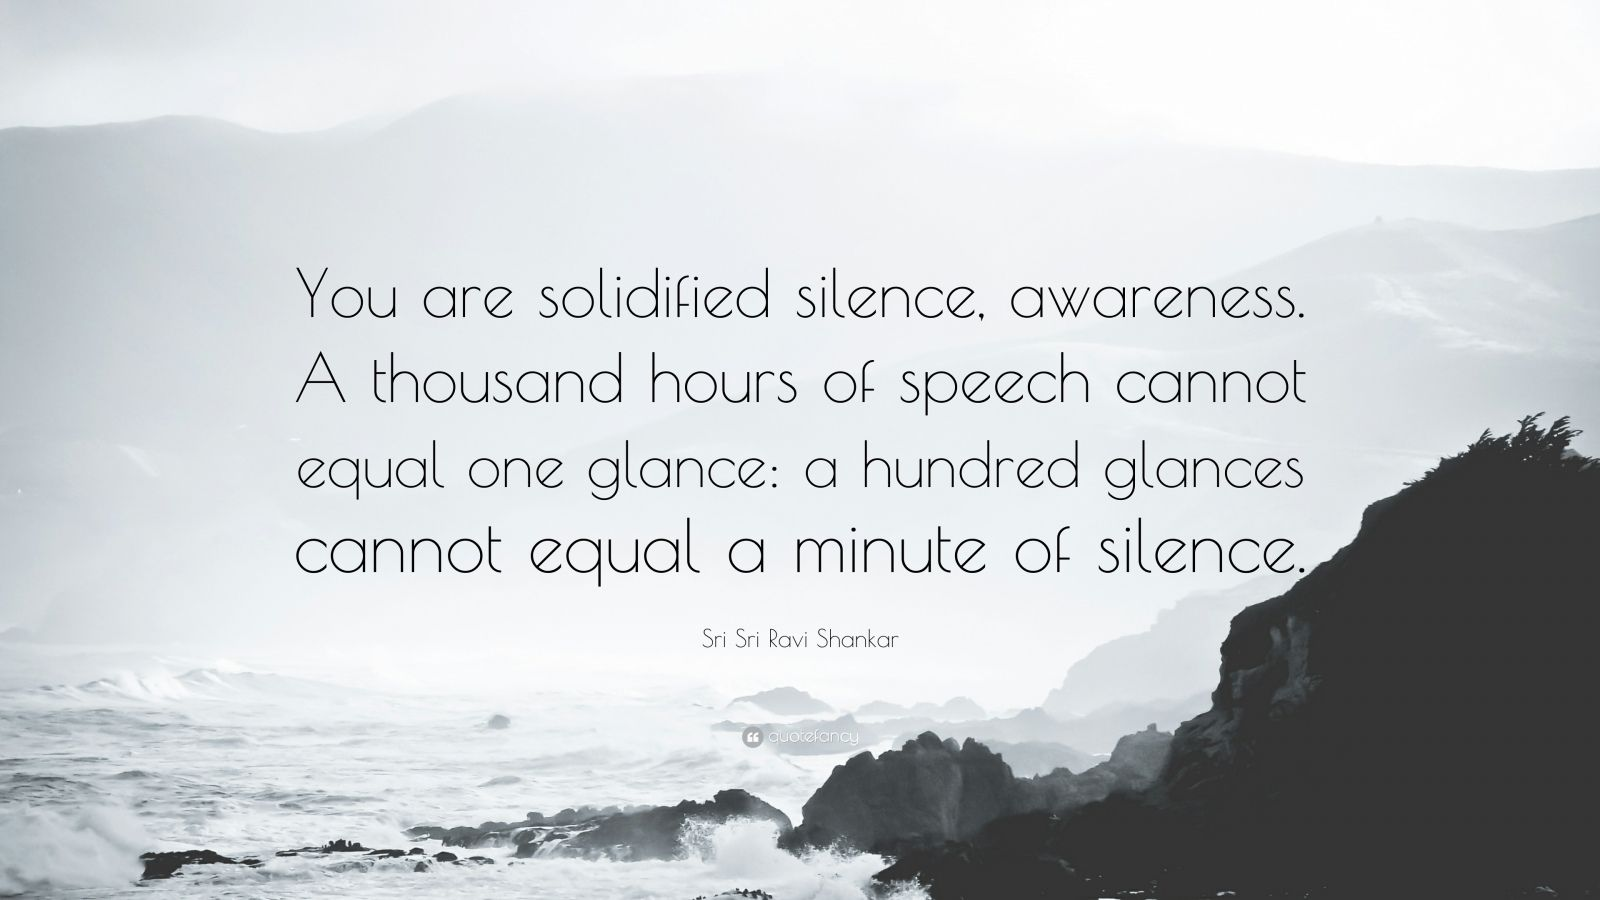 """Sri Sri Ravi Shankar Quote: """"You are solidified silence, awareness. A thousand hours of speech cannot equal one glance: a hundred glances cannot equal a minute of silence."""""""